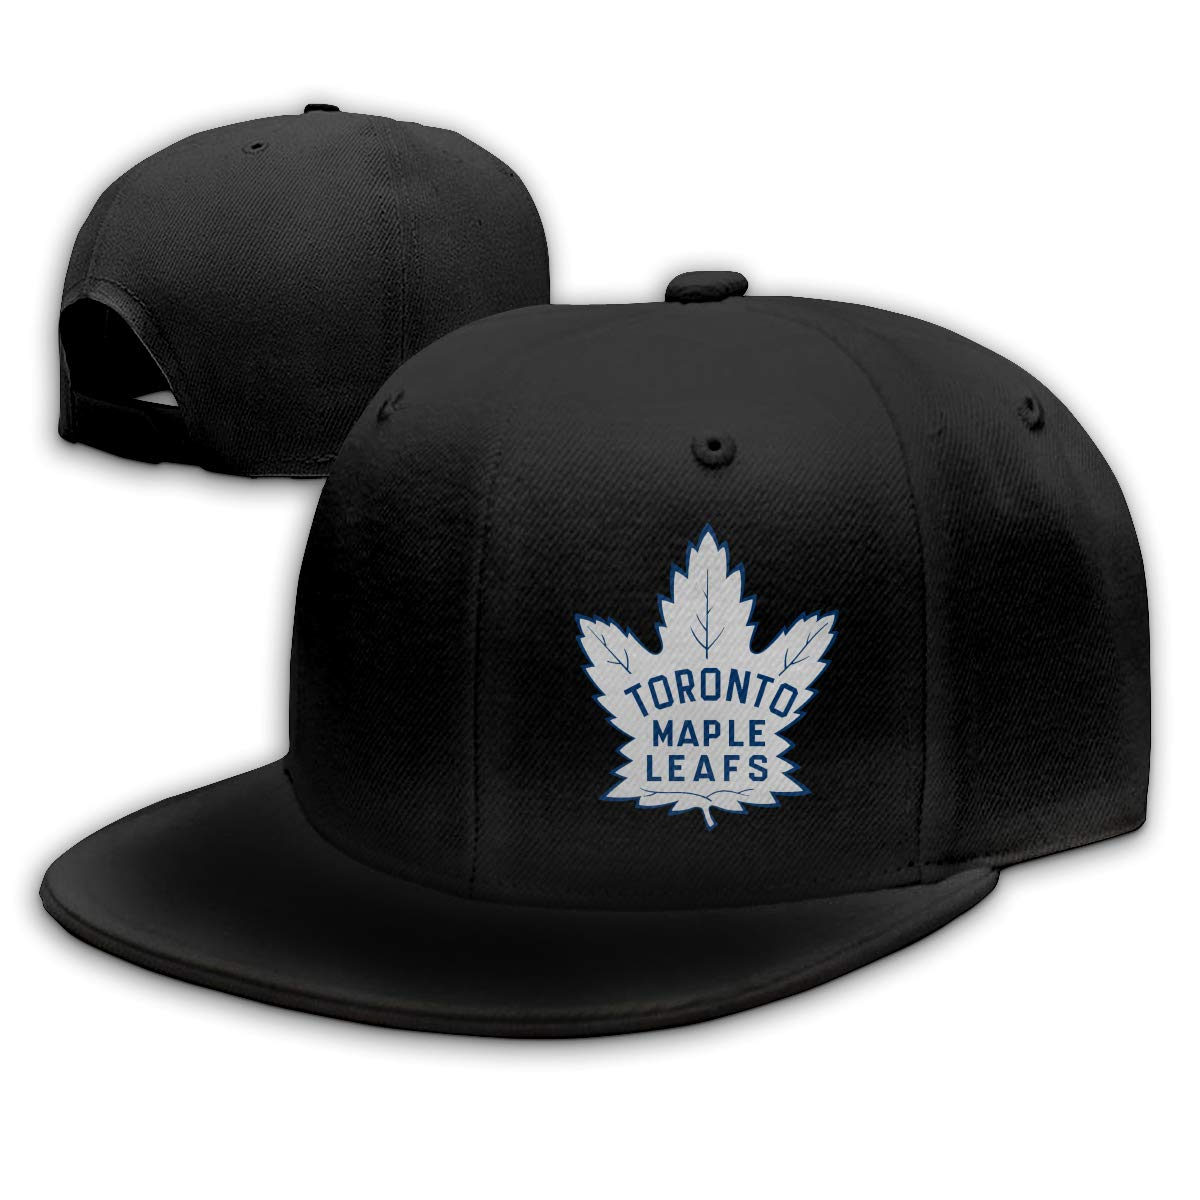 Thorea Unisex Hip Hop Old-Time-Hockey-Logo-Toronto-Maple-Leafs Adjustable Baseball Cap Black